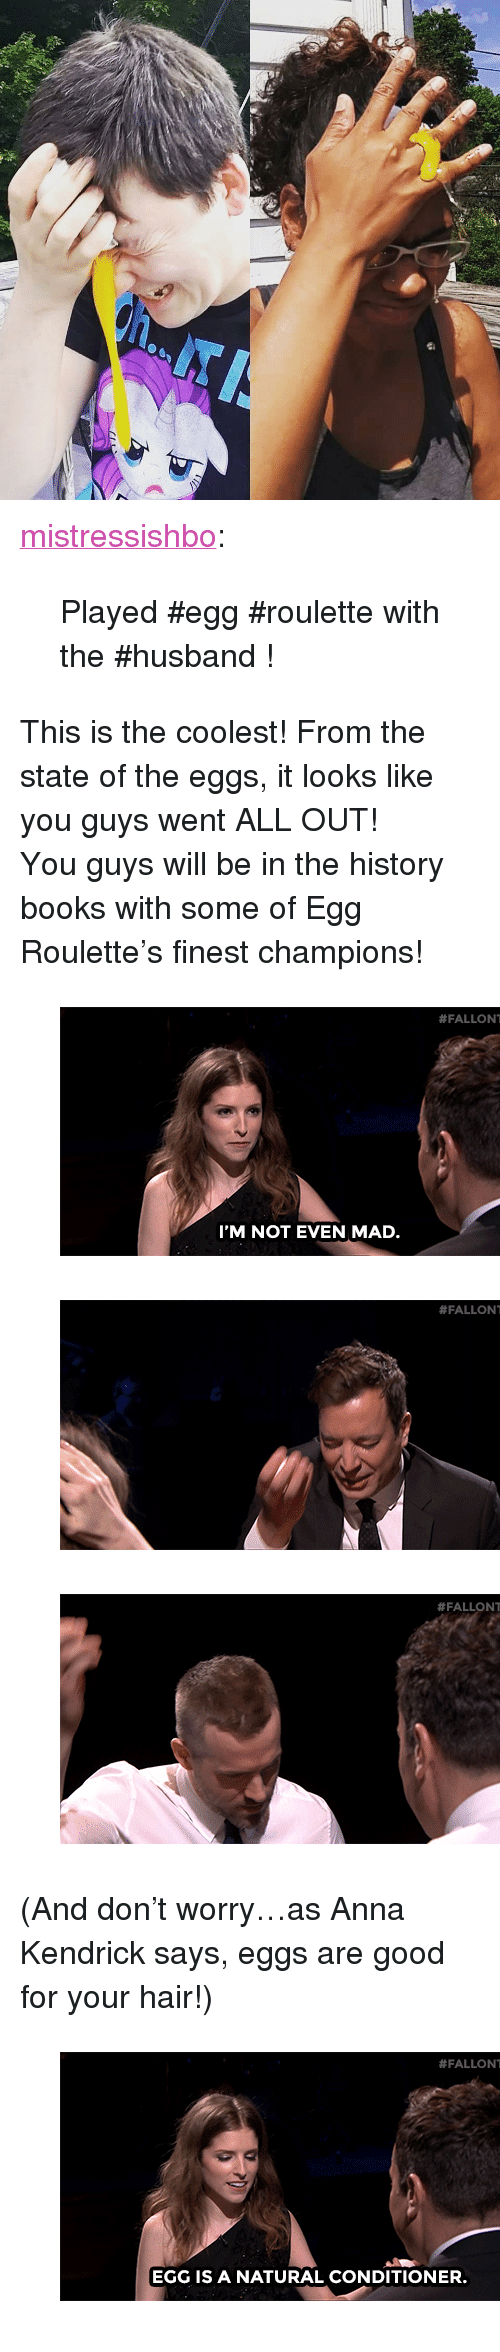 """anna kendrick: <p><a href=""""http://mistressishbo.tumblr.com/post/123763651349/played-egg-roulette-with-the-husband-go-on-my"""" class=""""tumblr_blog"""" target=""""_blank"""">mistressishbo</a>:</p>  <blockquote><p>Played #egg #roulette with the #husband !</p></blockquote><p>This is the coolest! From the state of the eggs, it looks like you guys went ALL OUT!</p><p>You guys will be in the history books with some of Egg Roulette's finest champions!</p><figure data-orig-width=""""500"""" data-orig-height=""""249"""" class=""""tmblr-full""""><img src=""""https://78.media.tumblr.com/315cee0223814b0485e2b1a7118dc5ea/tumblr_inline_nrdr2tmf761qgt12i_500.gif"""" alt=""""image"""" data-orig-width=""""500"""" data-orig-height=""""249""""/></figure><figure data-orig-width=""""500"""" data-orig-height=""""250"""" class=""""tmblr-full""""><img src=""""https://78.media.tumblr.com/570811d502e8928716016709aaecc060/tumblr_inline_nrdr3hJUtu1qgt12i_500.gif"""" alt=""""image"""" data-orig-width=""""500"""" data-orig-height=""""250""""/></figure><figure data-orig-width=""""500"""" data-orig-height=""""250"""" class=""""tmblr-full""""><img src=""""https://78.media.tumblr.com/be7c34b688b26e58409e24172bb1eea2/tumblr_inline_nrdr4bygDN1qgt12i_500.gif"""" alt=""""image"""" data-orig-width=""""500"""" data-orig-height=""""250""""/></figure><p>(And don't worry&hellip;as Anna Kendrick says, eggs are good for your hair!)</p><figure data-orig-width=""""500"""" data-orig-height=""""249"""" class=""""tmblr-full""""><img src=""""https://78.media.tumblr.com/bf2a1720a2ff74a11335a7920eef624c/tumblr_inline_nrdr5ia6z41qgt12i_500.gif"""" alt=""""image"""" data-orig-width=""""500"""" data-orig-height=""""249""""/></figure>"""